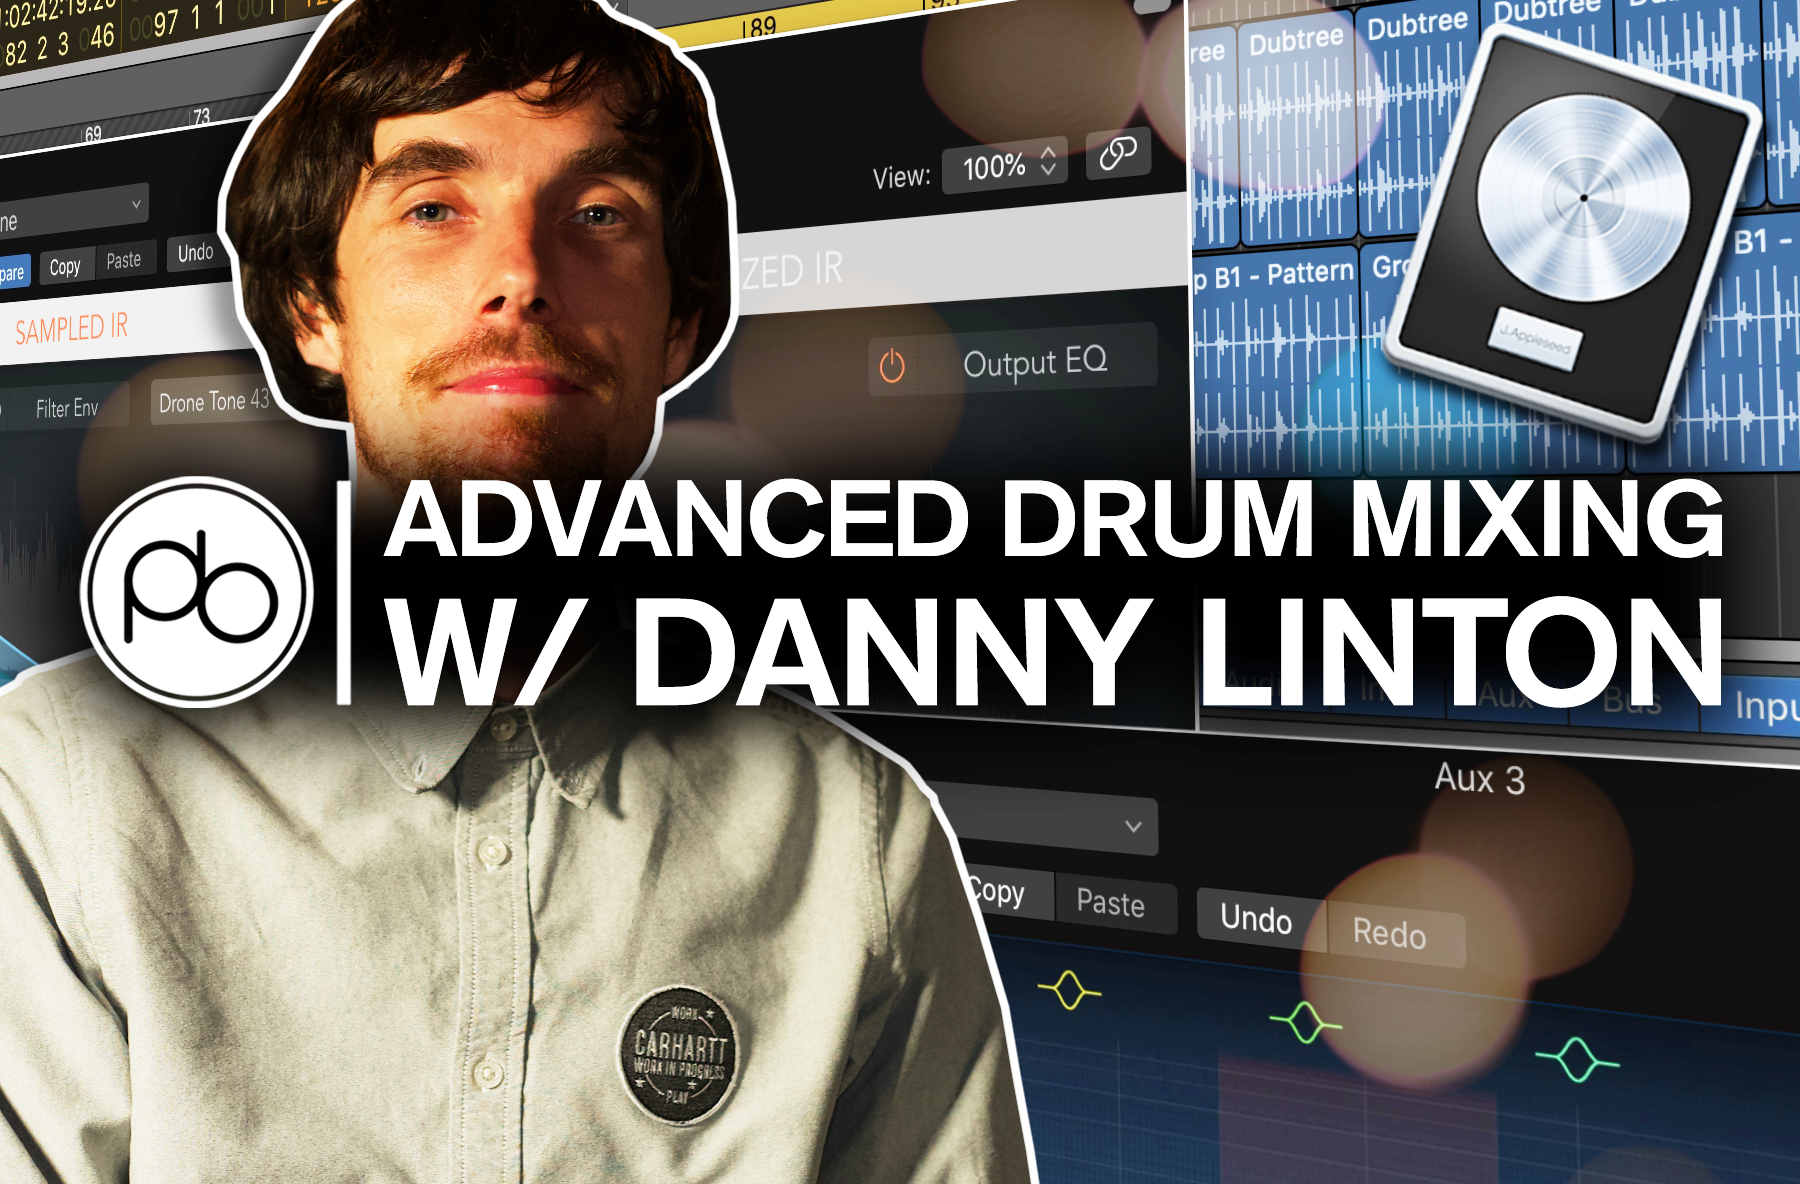 Learn Creative Drum Mixing Techniques With Funk Ethics in New Video